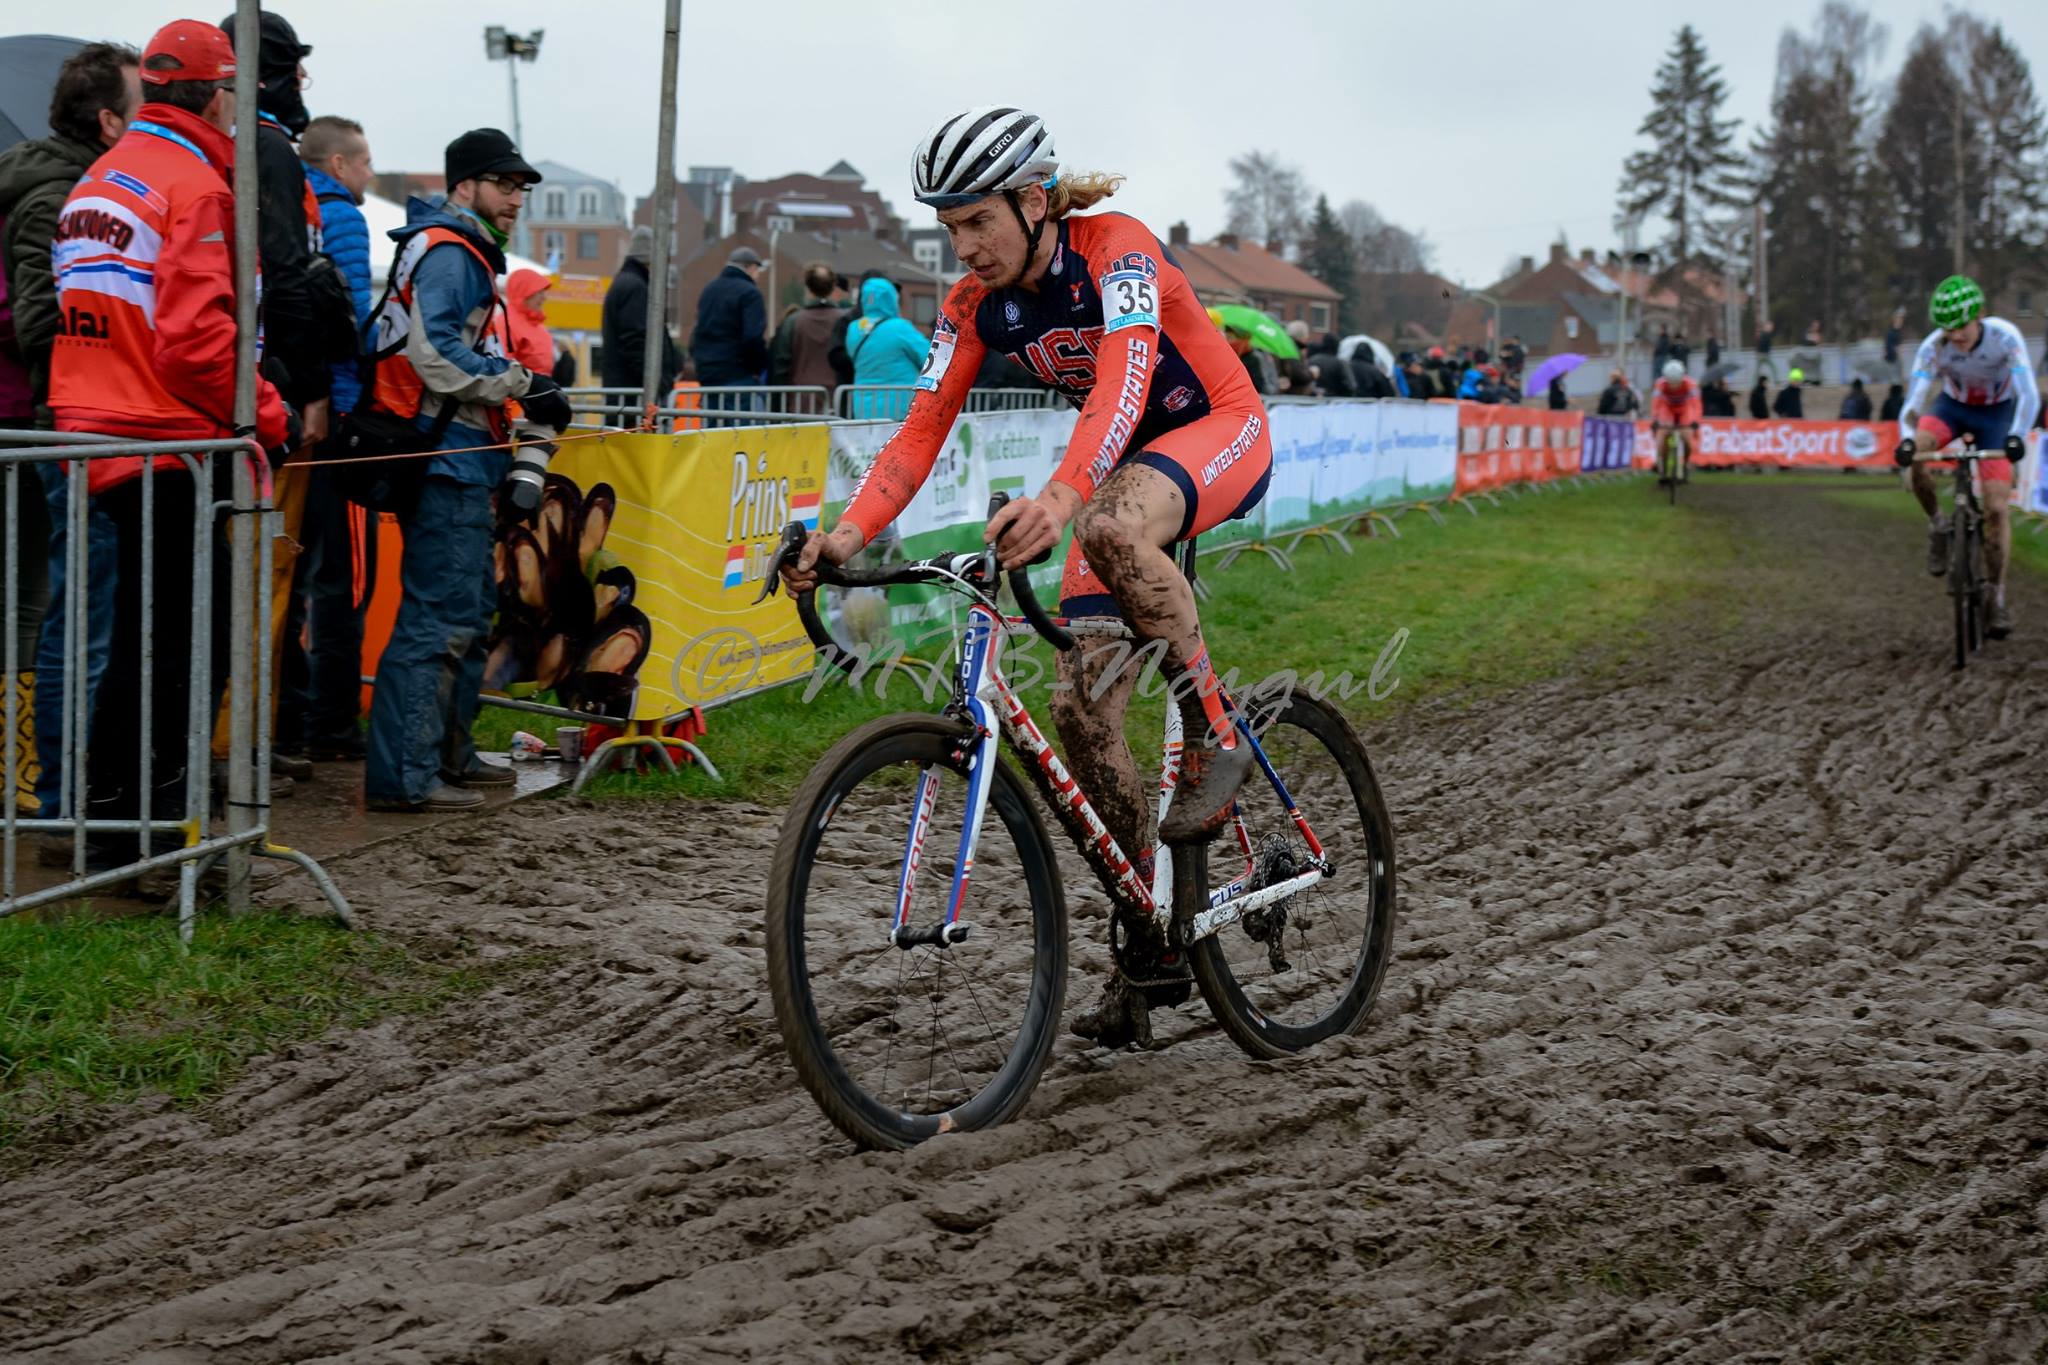 Scott Smith welcomed the mud and ruts in his first-ever World Cup race. Photo by Kristel Van Gilst.